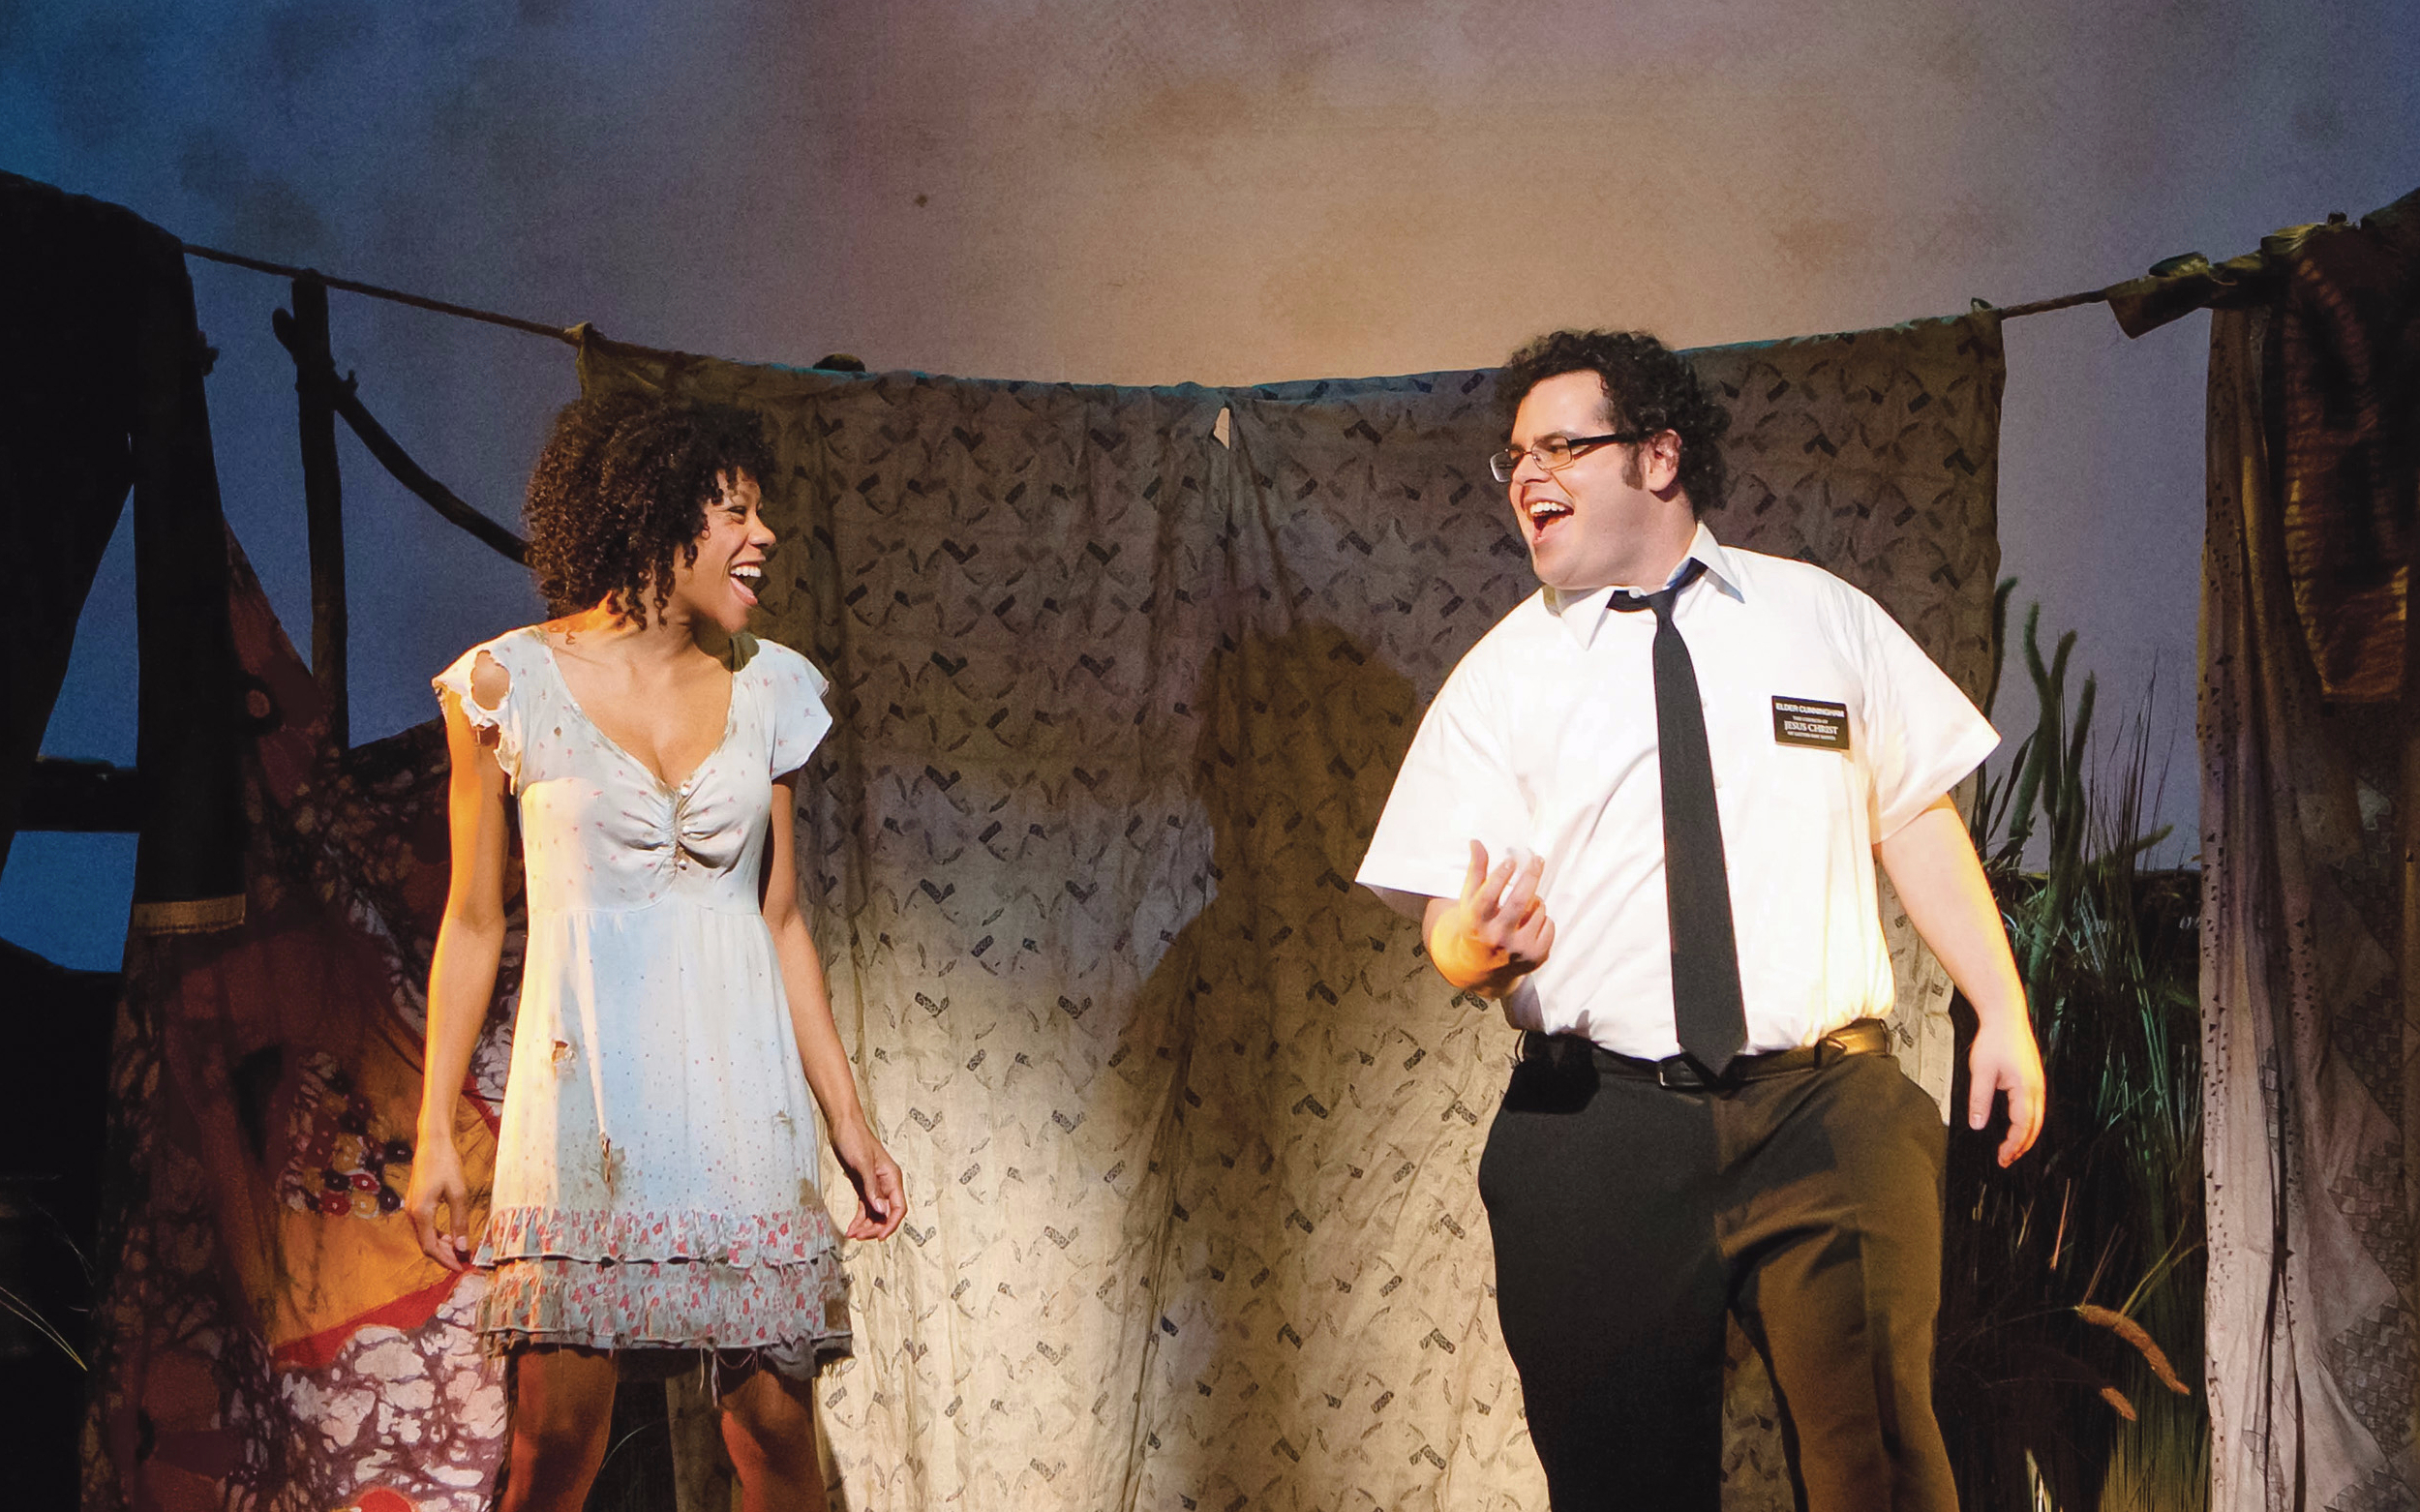 5ebef209 aef9 4d0d 8534 adb65e560713 730 new york the book of mormon 05